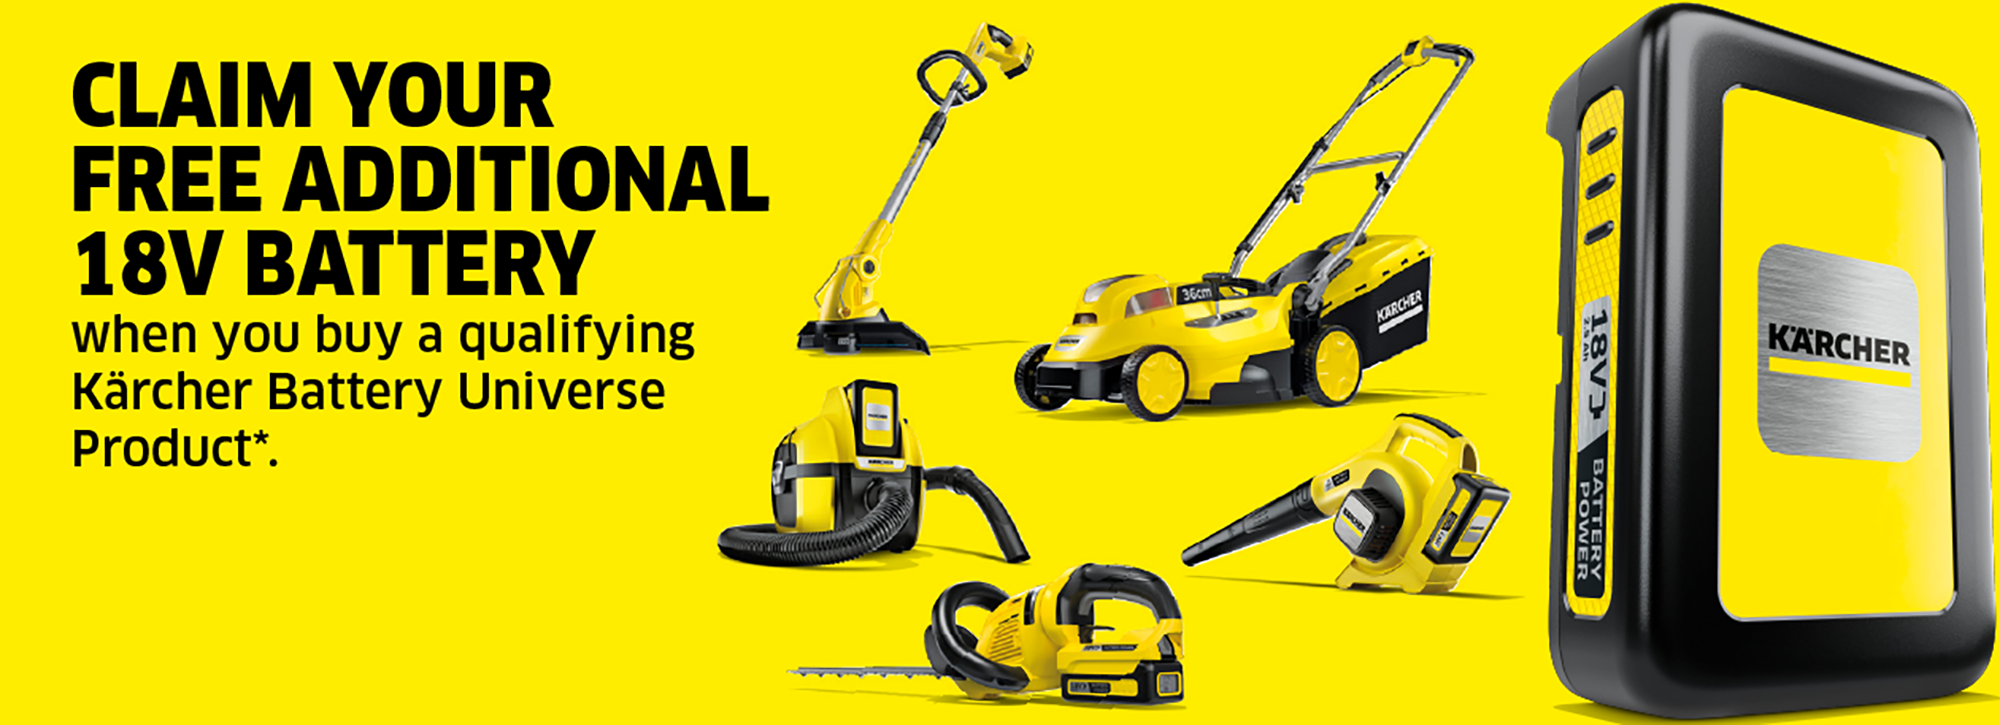 https://www.karcherrewards.co.uk/